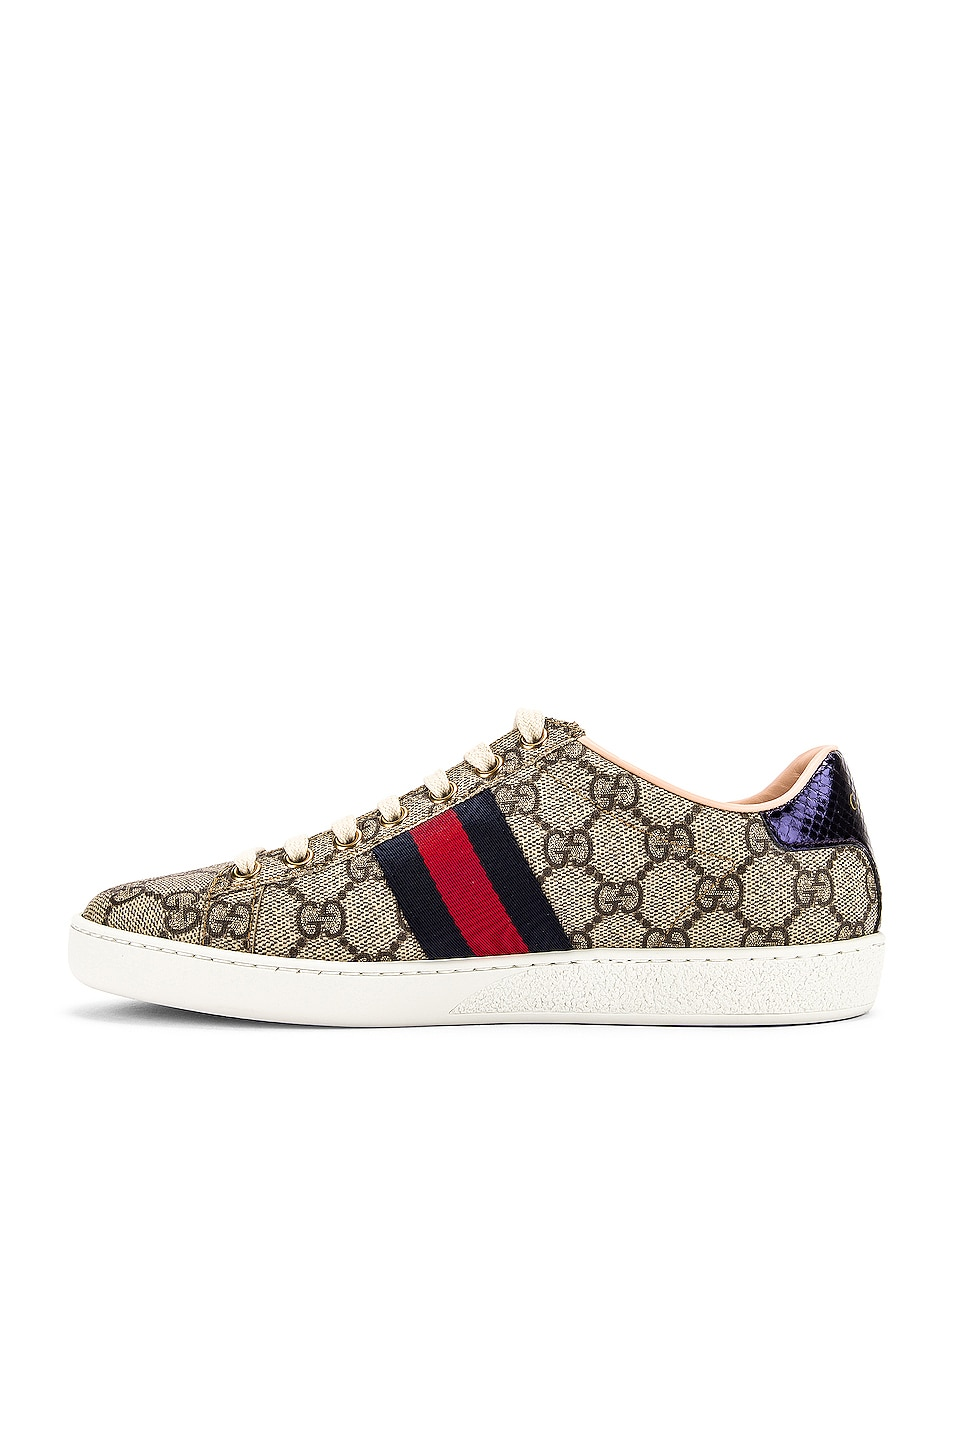 Image 5 of Gucci New Ace GG Sneakers in Beige Ebony & Red